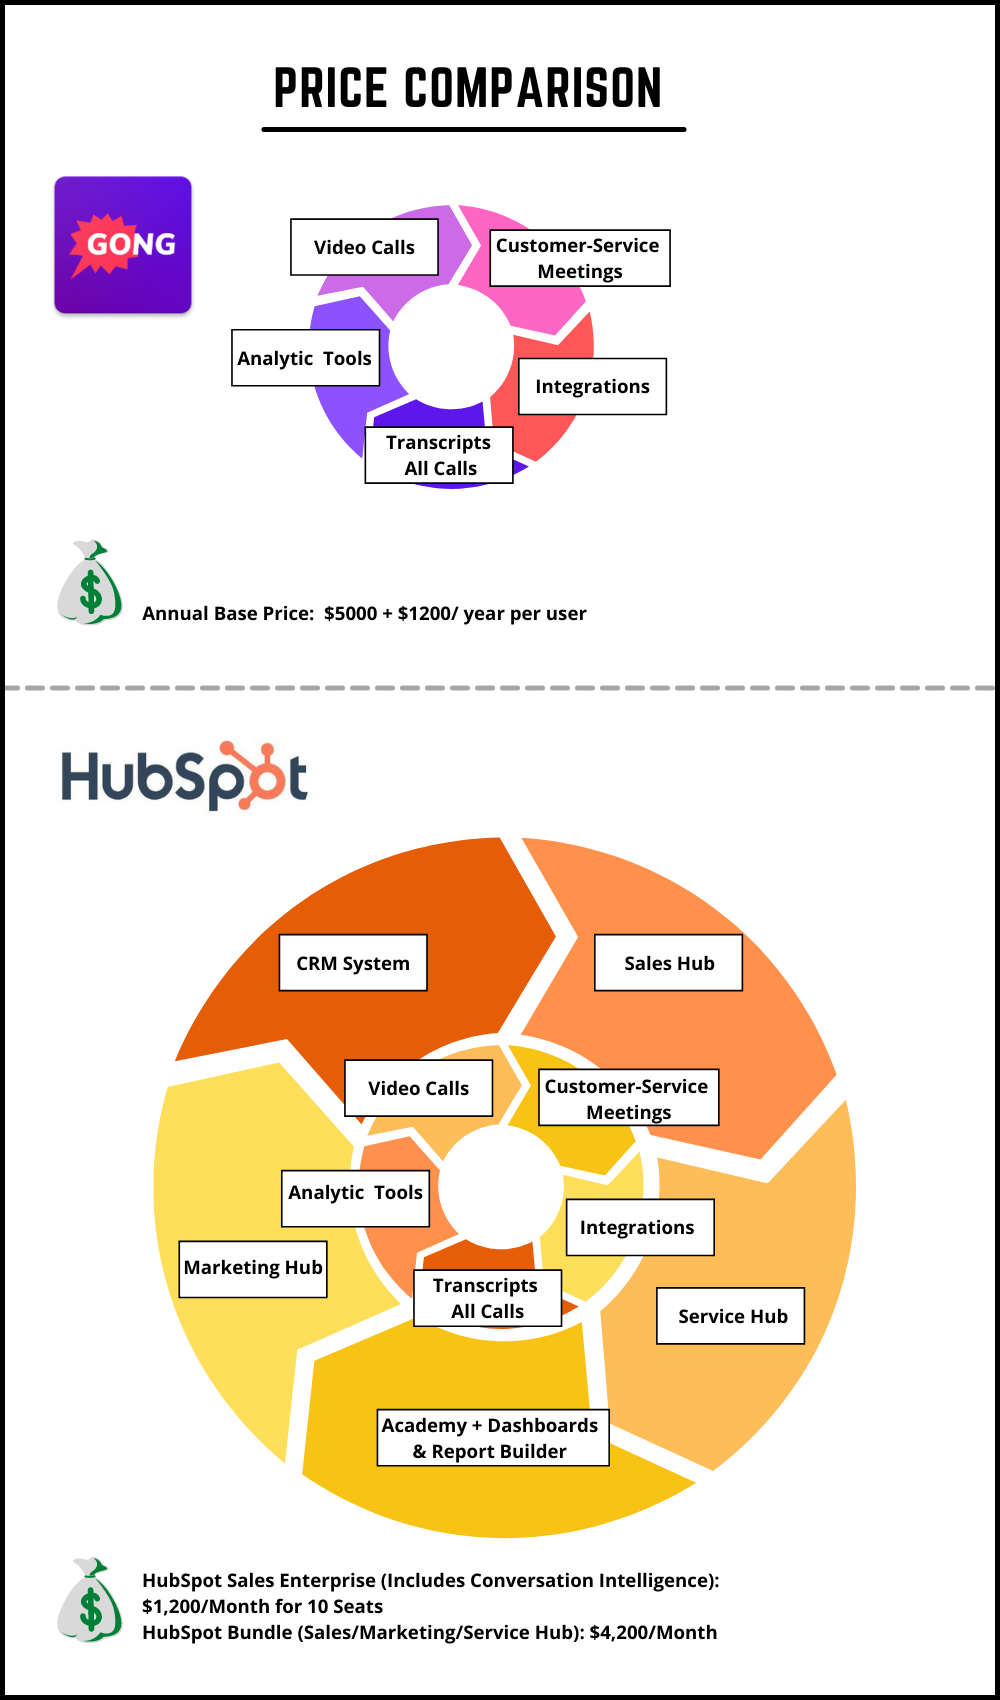 Price comparison of Gong: $5000 +$1,200/ year per user vs. HubSpot Sales Enterprise: $1,200/ month for 10 seats